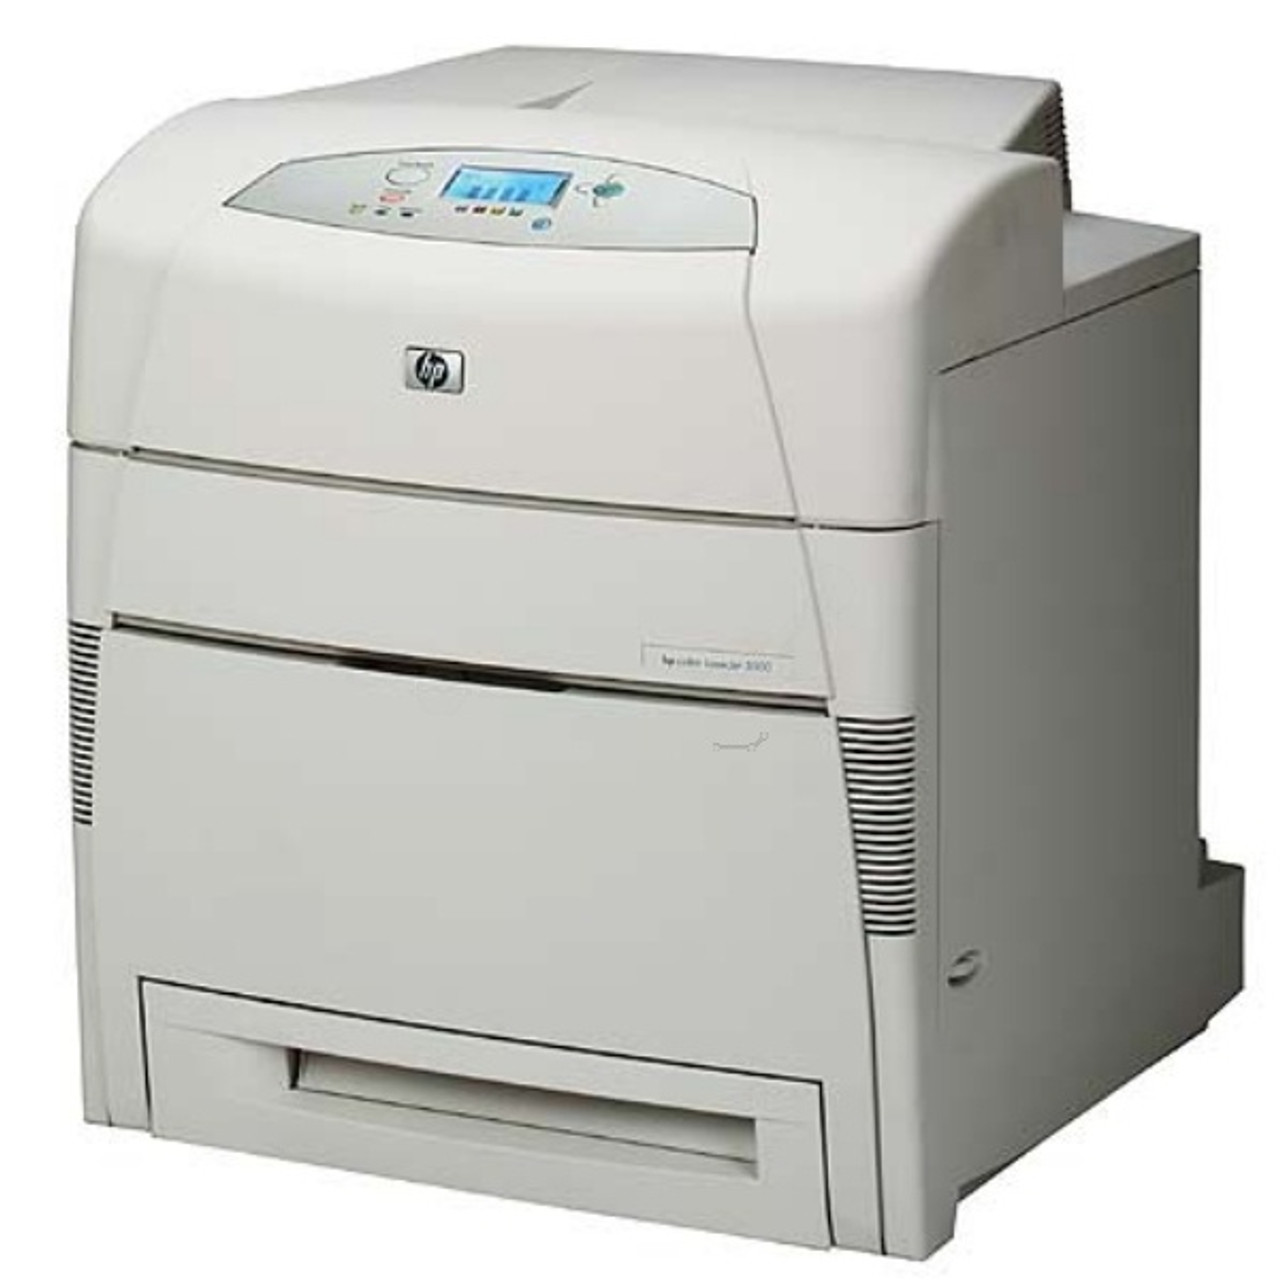 HP Color LaserJet 5500n - C7131A - HP Laser Printer for sale